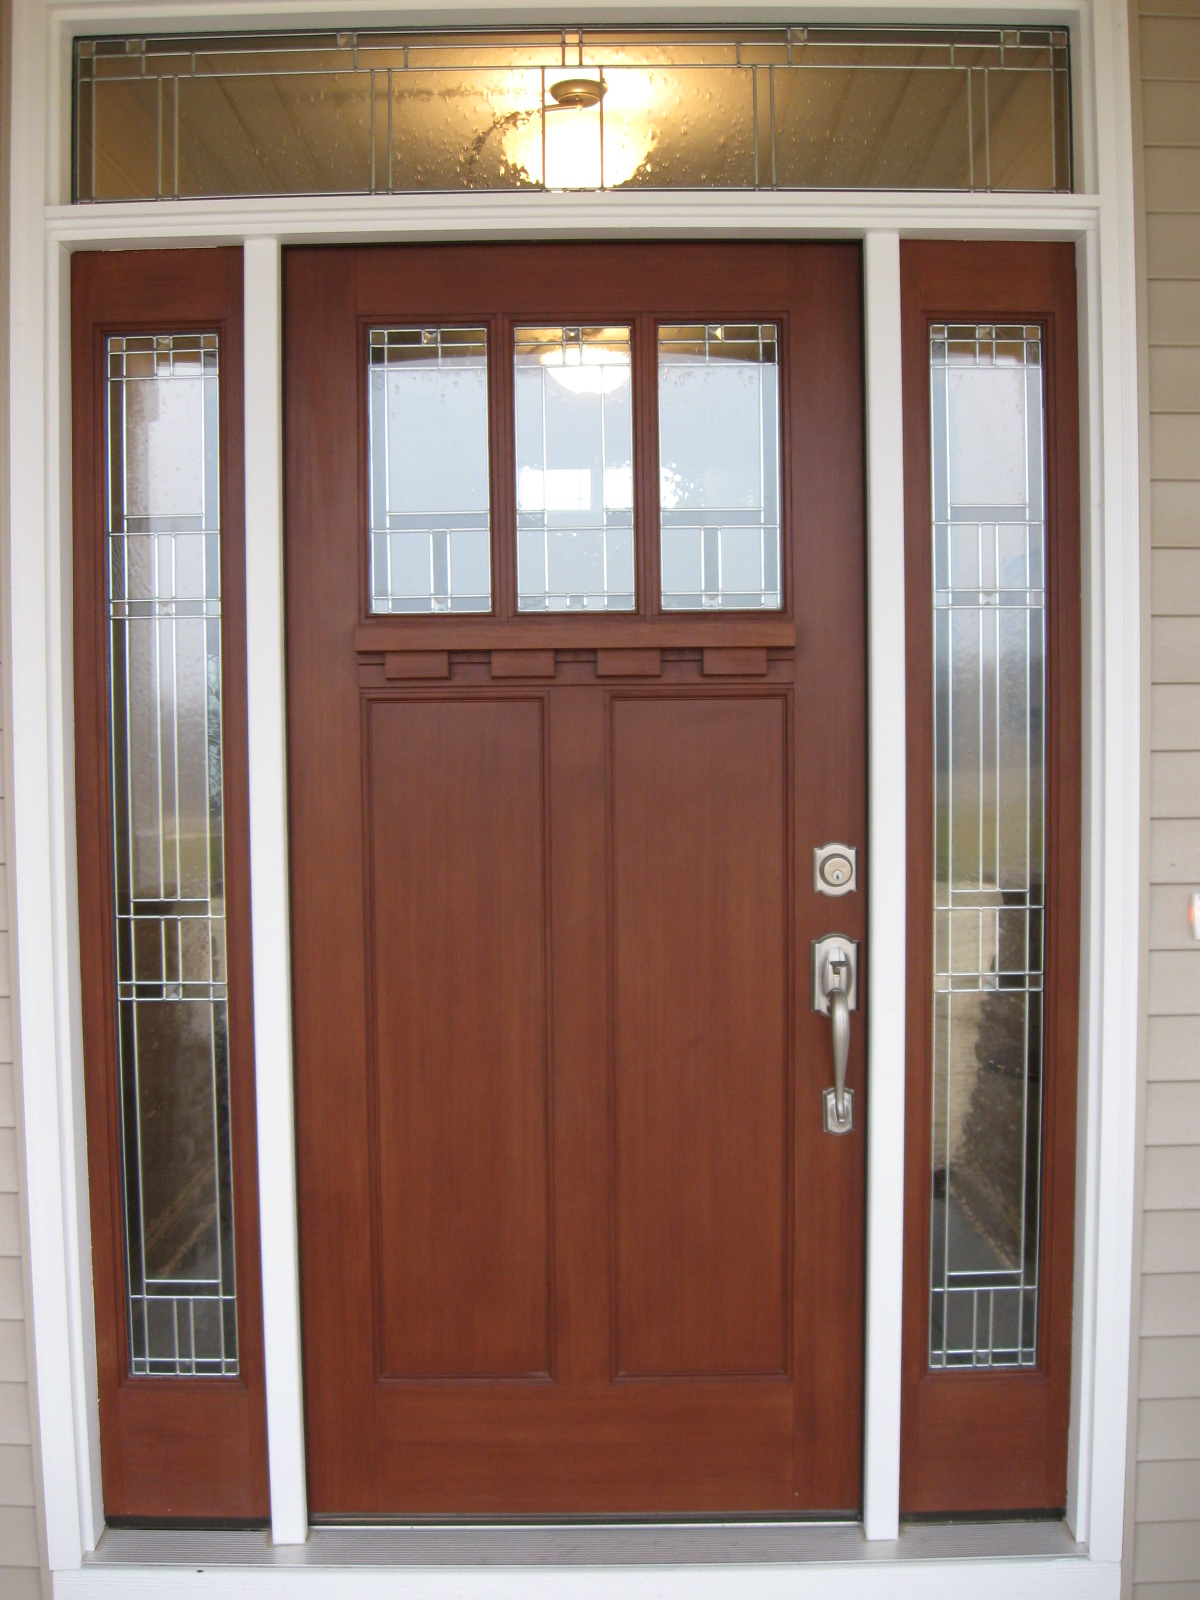 How to install a prehung door properly in your new home for Front entry door installation